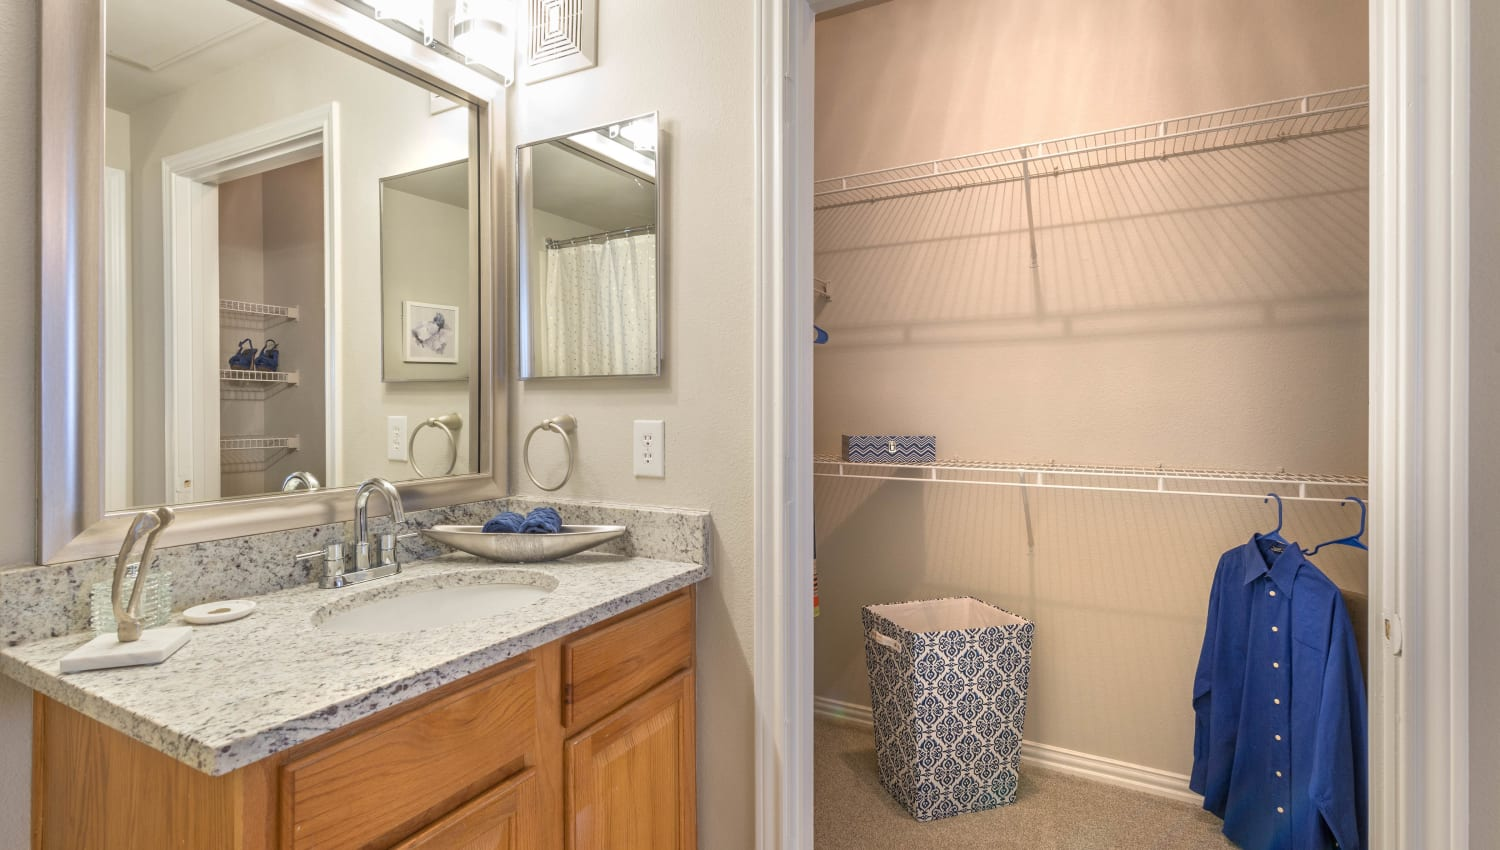 Model home's bathroom with a walk-in closet at Olympus Stone Glen in Keller, Texas